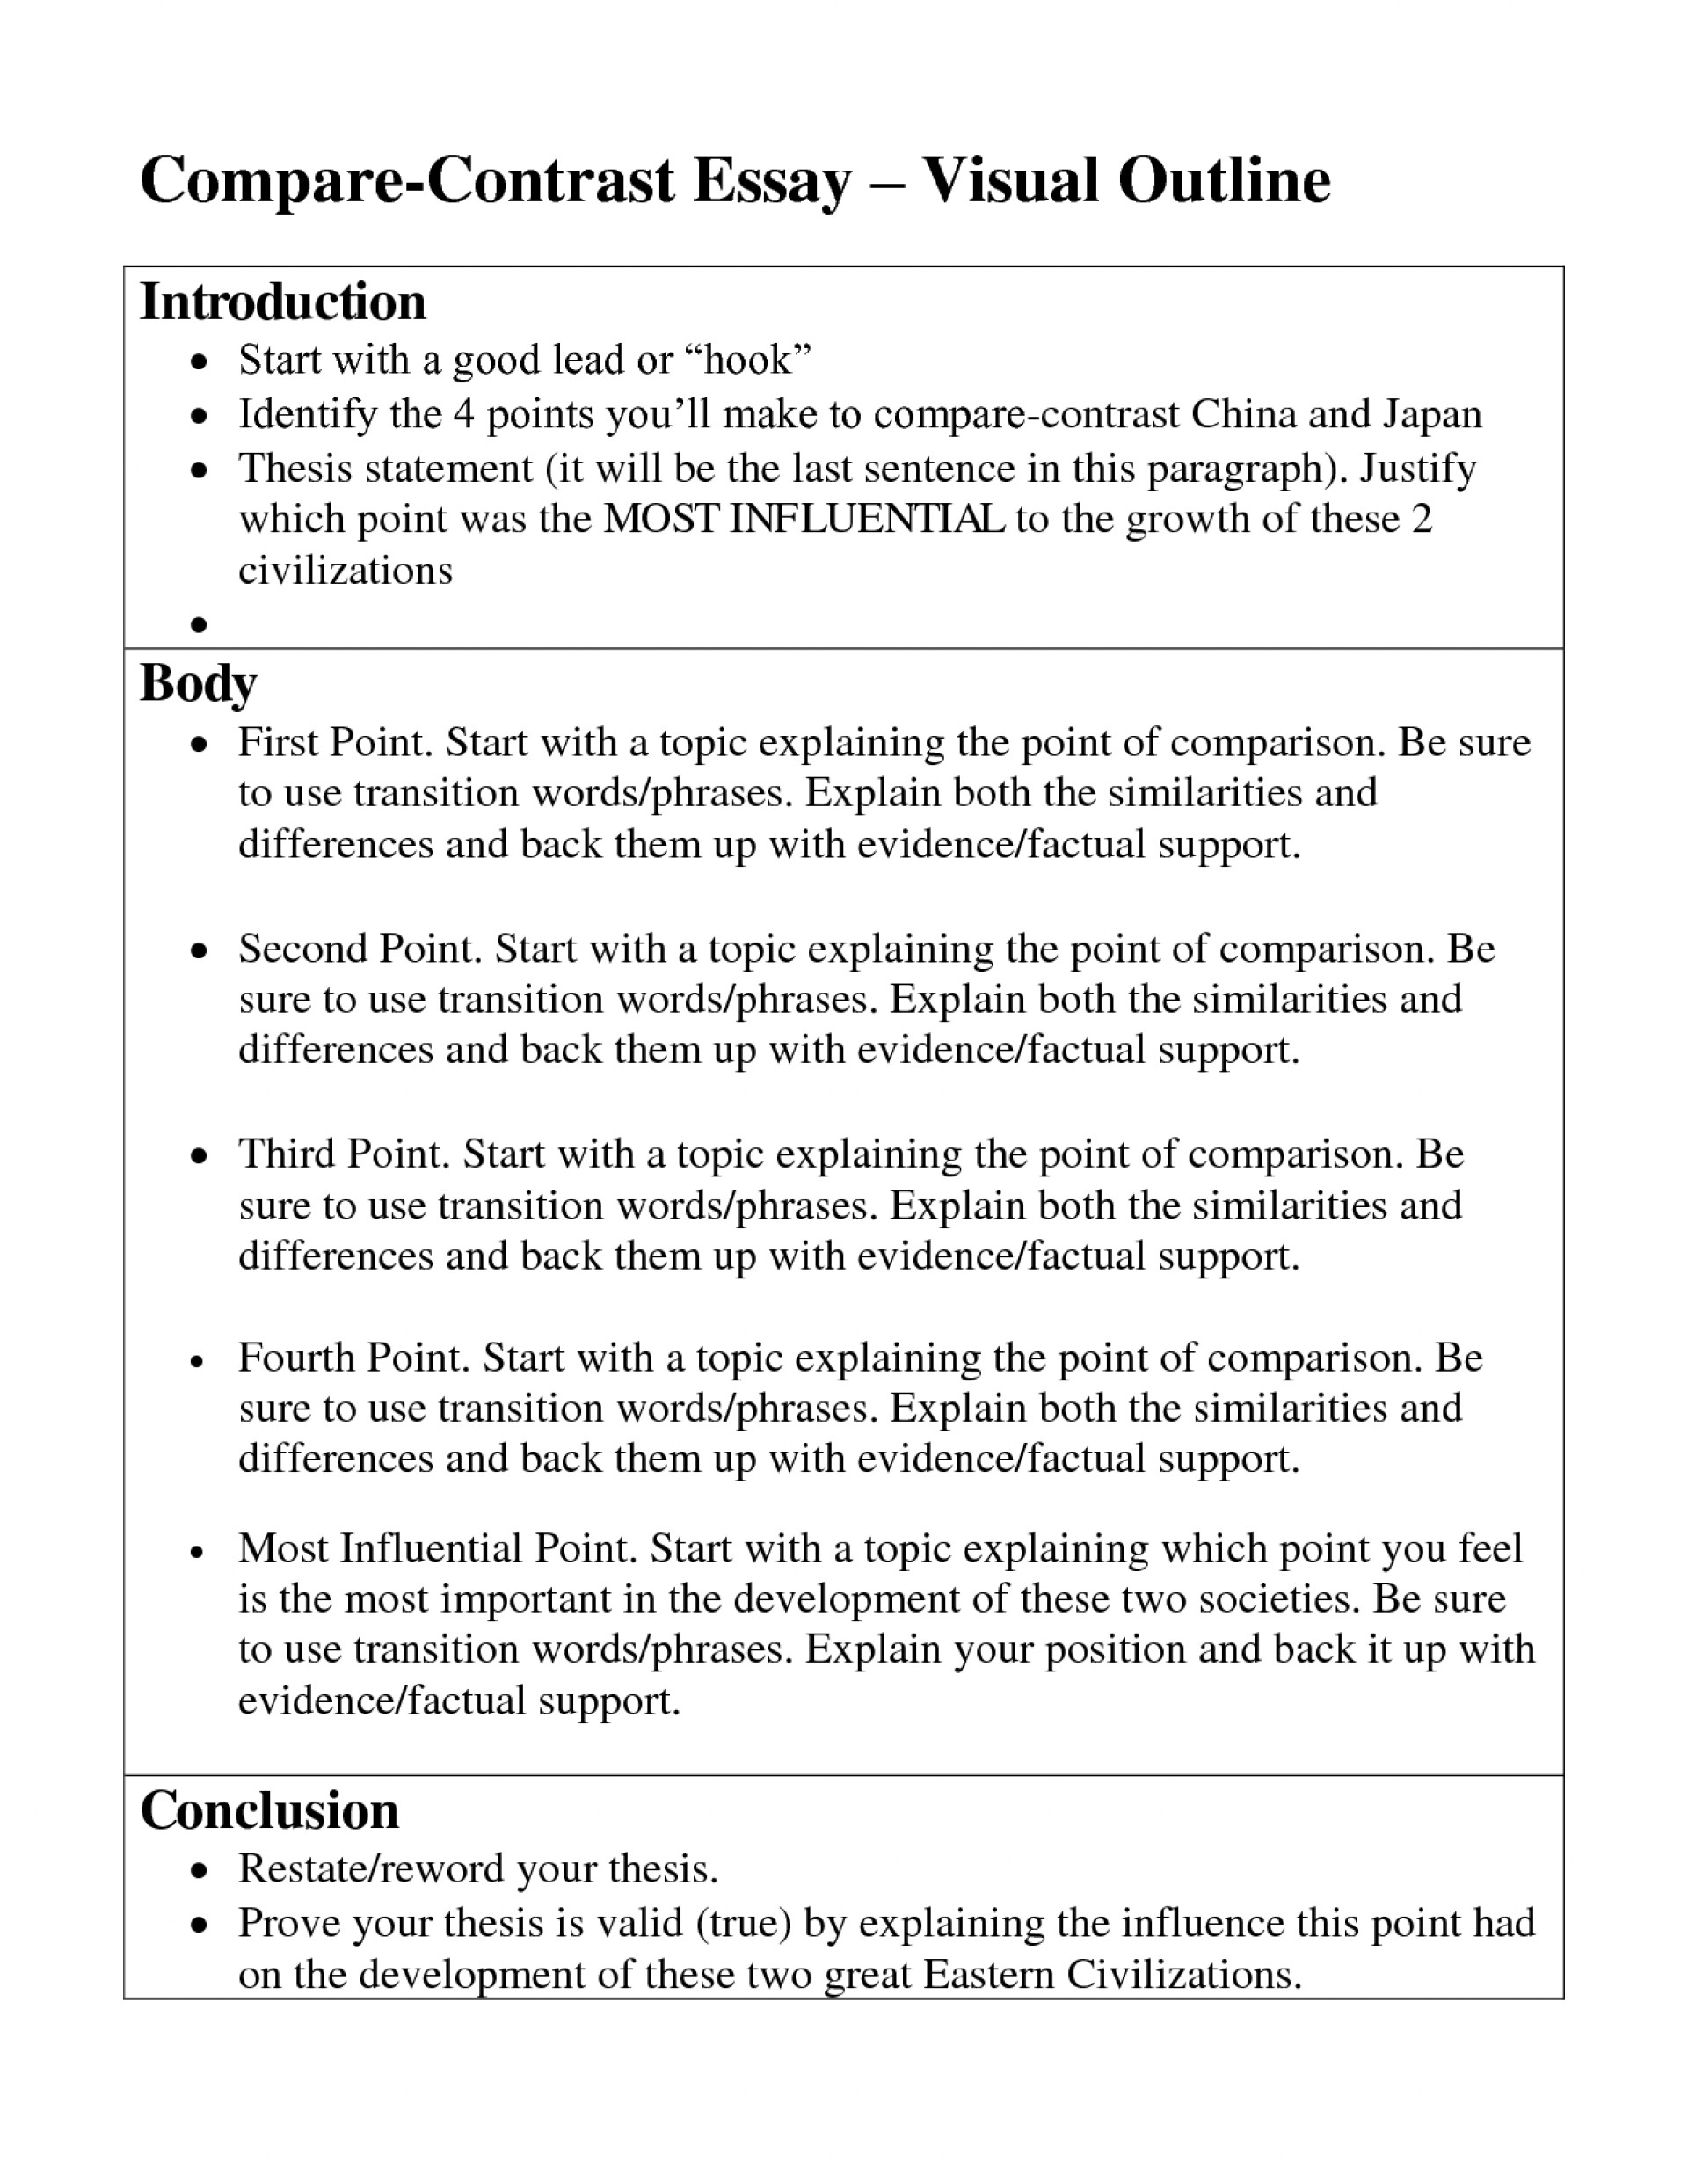 005 How To Start Research Paper Frightening Paragraph Your First Body In A Conclusion 1920